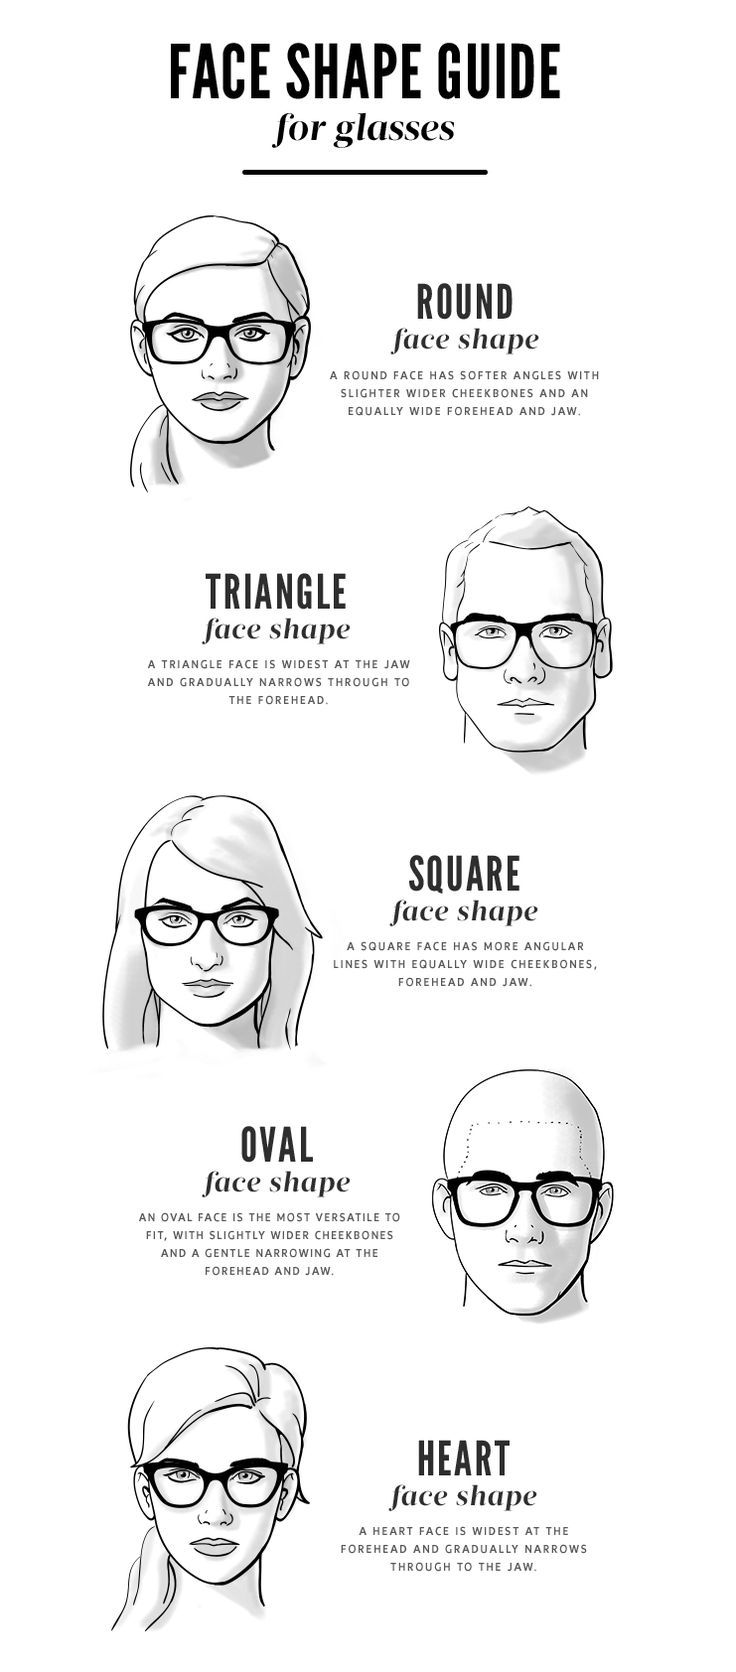 How to choose best glasses for your face shape | Round ...